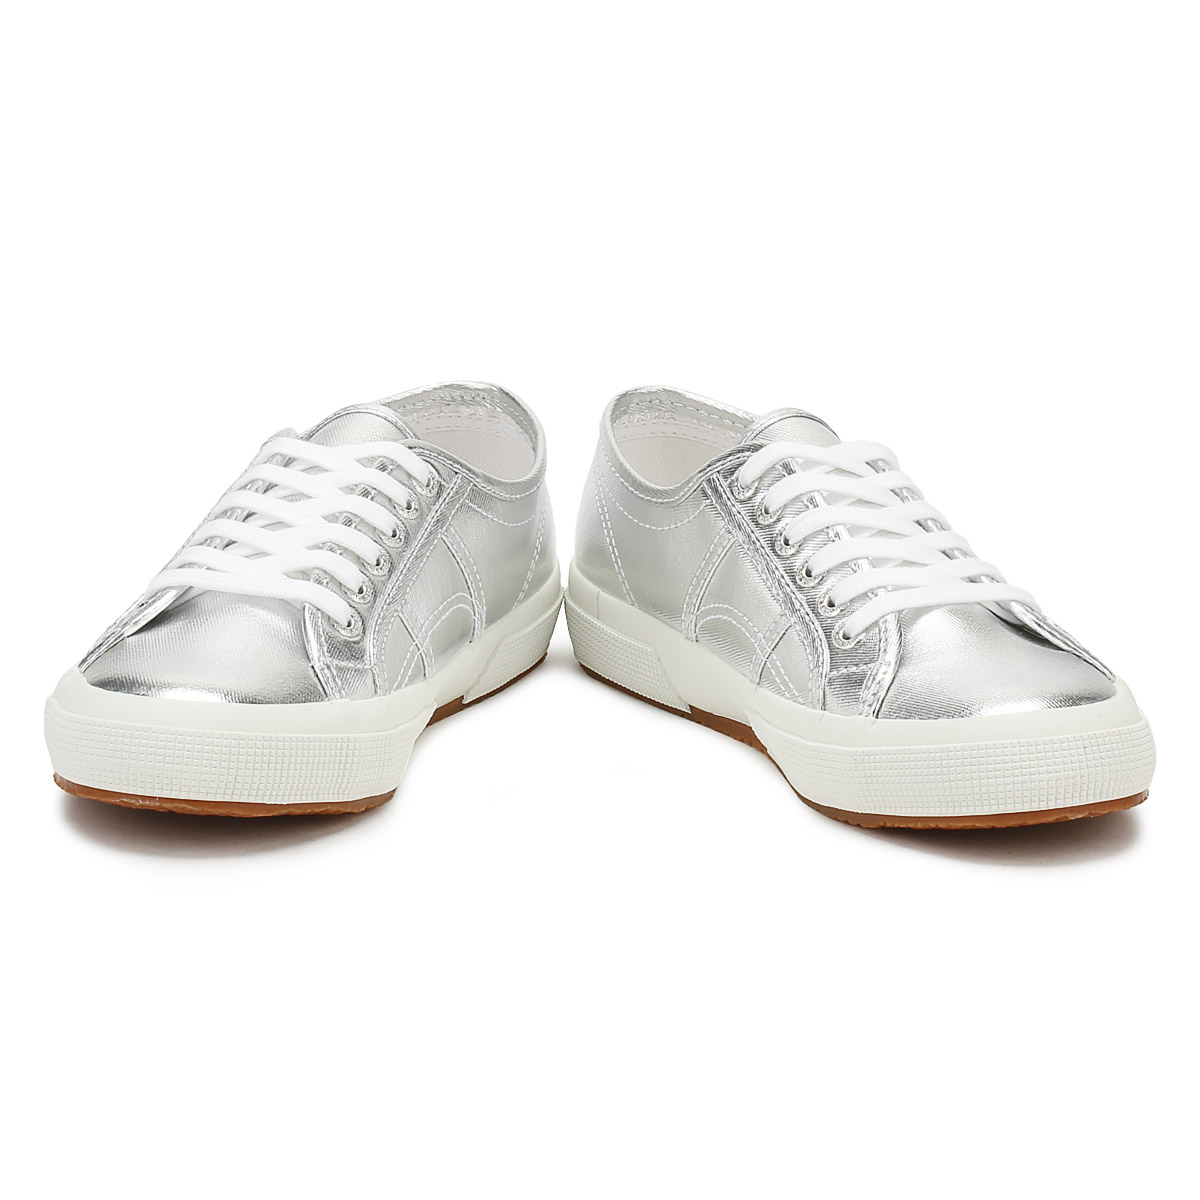 Superga Womens 2750 Trainers Grey Silver 2750 Womens Cotmetu Sport Casual Lace Up Shoes 3a450f